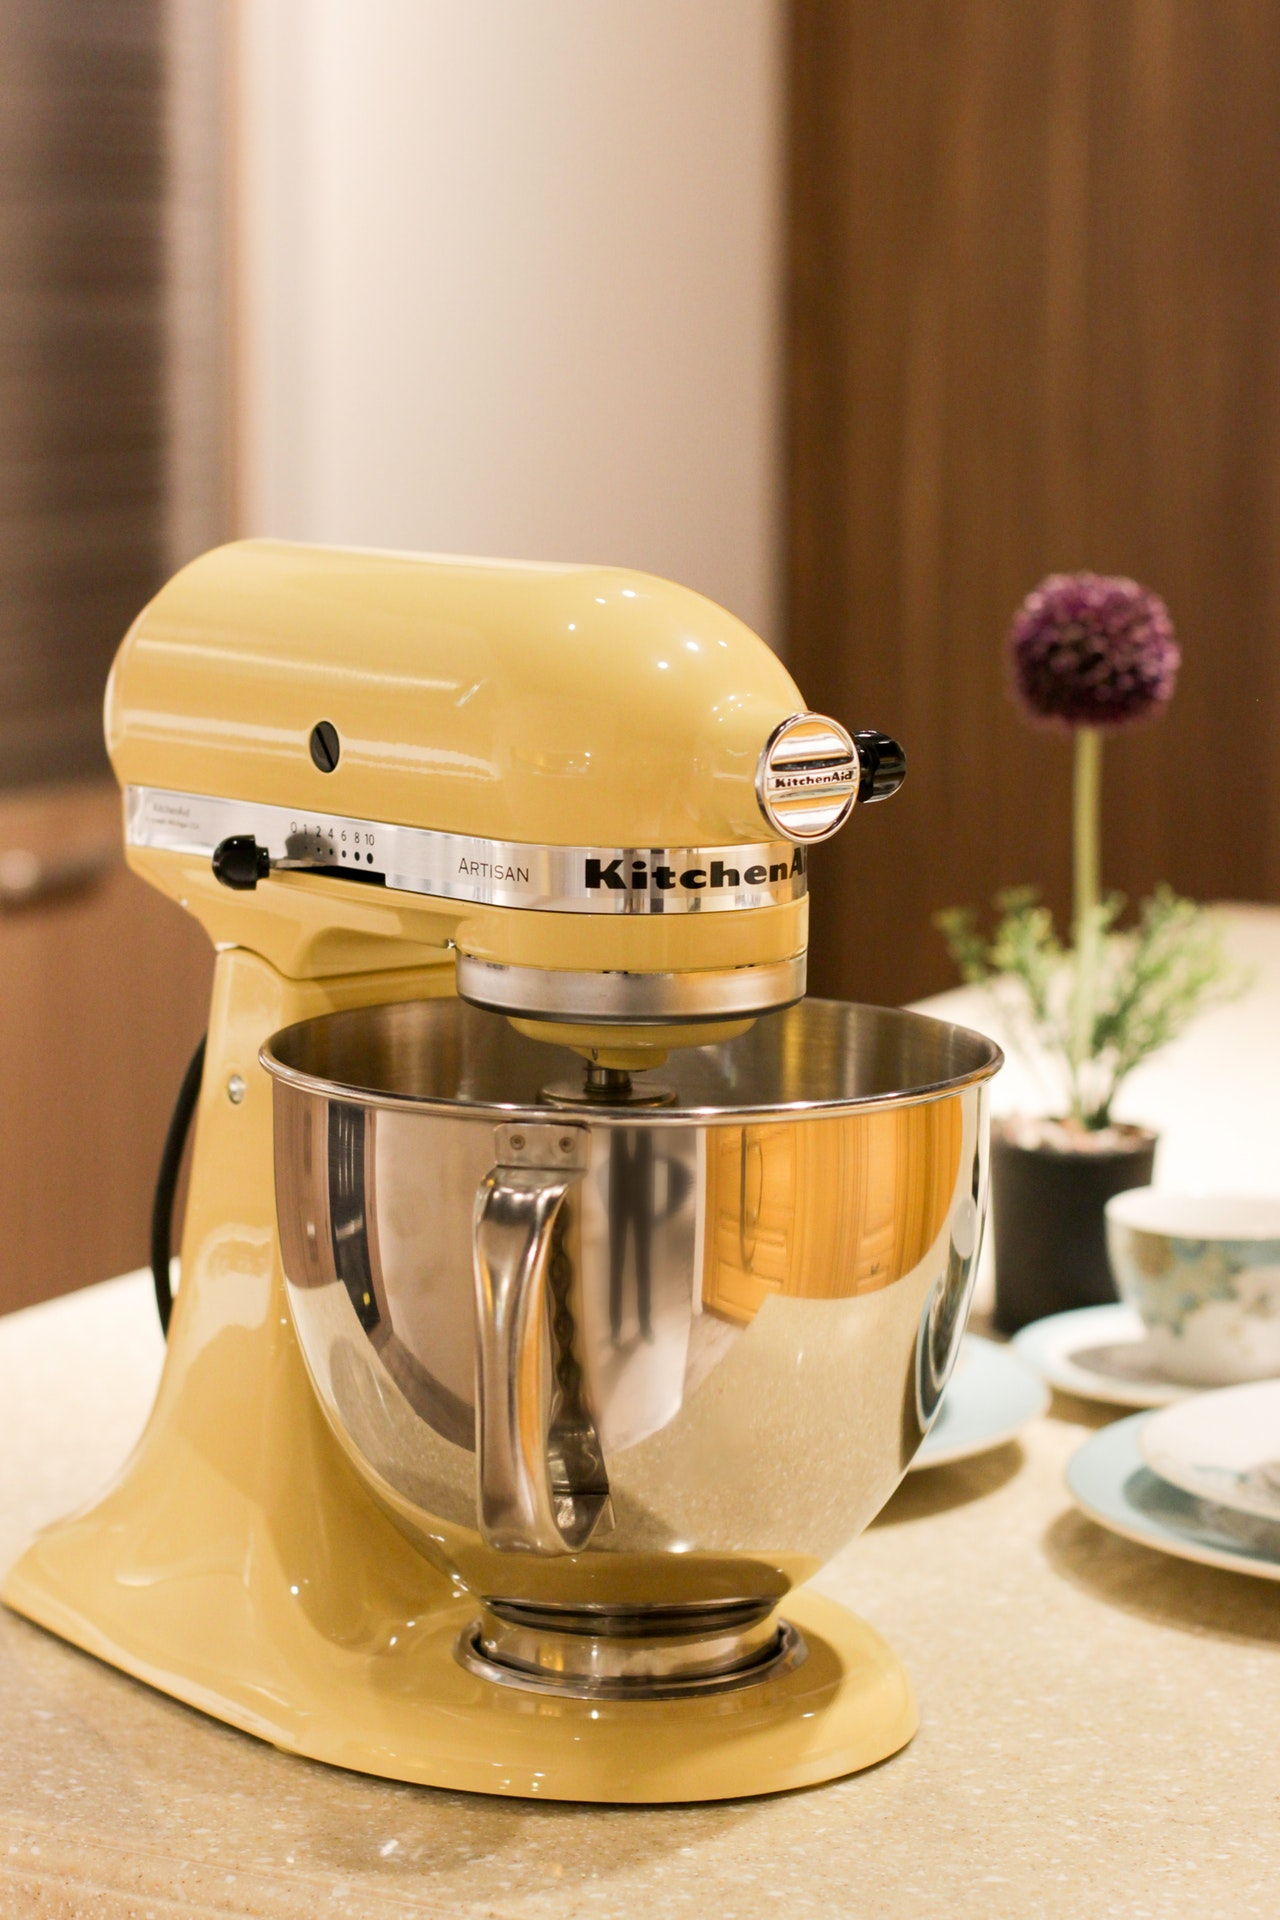 The 5 Best Things to Do With Your Stand Mixer